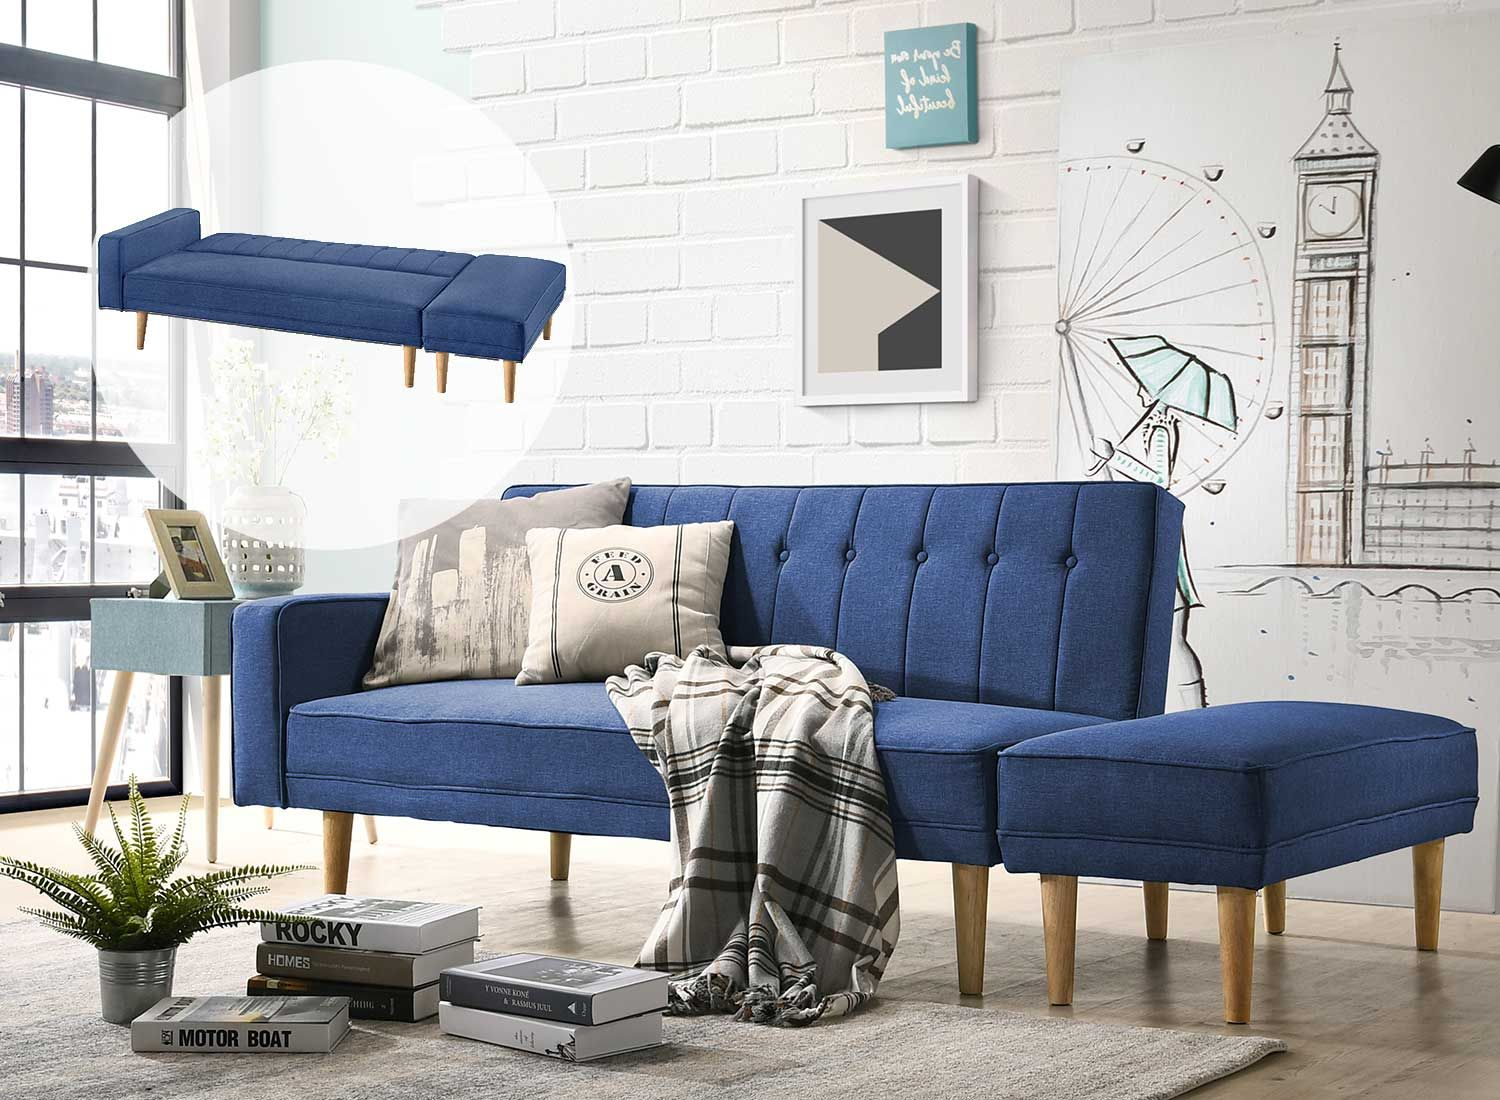 Fabulous Sofa Comes First When Furnishing Your Bedroom On Afterpay Uwap Interior Chair Design Uwaporg